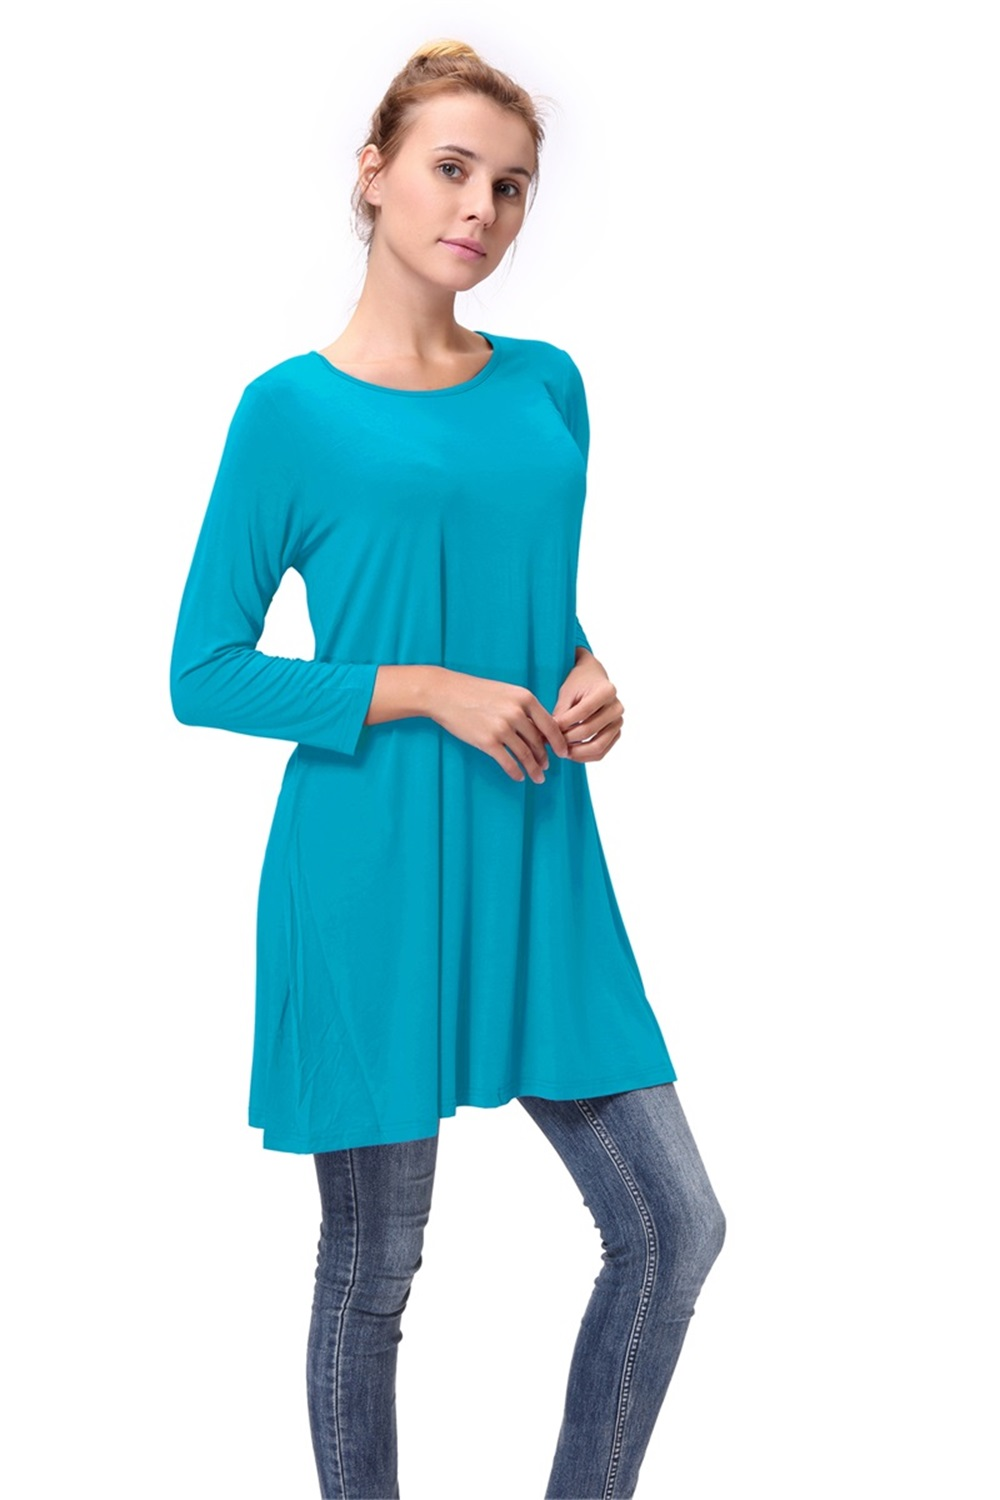 Women-Casual-Round-Neck-3-4-Long-Sleeve-Trapeze-Tunic-Top-Lady-Loose-Fit-Dress thumbnail 32